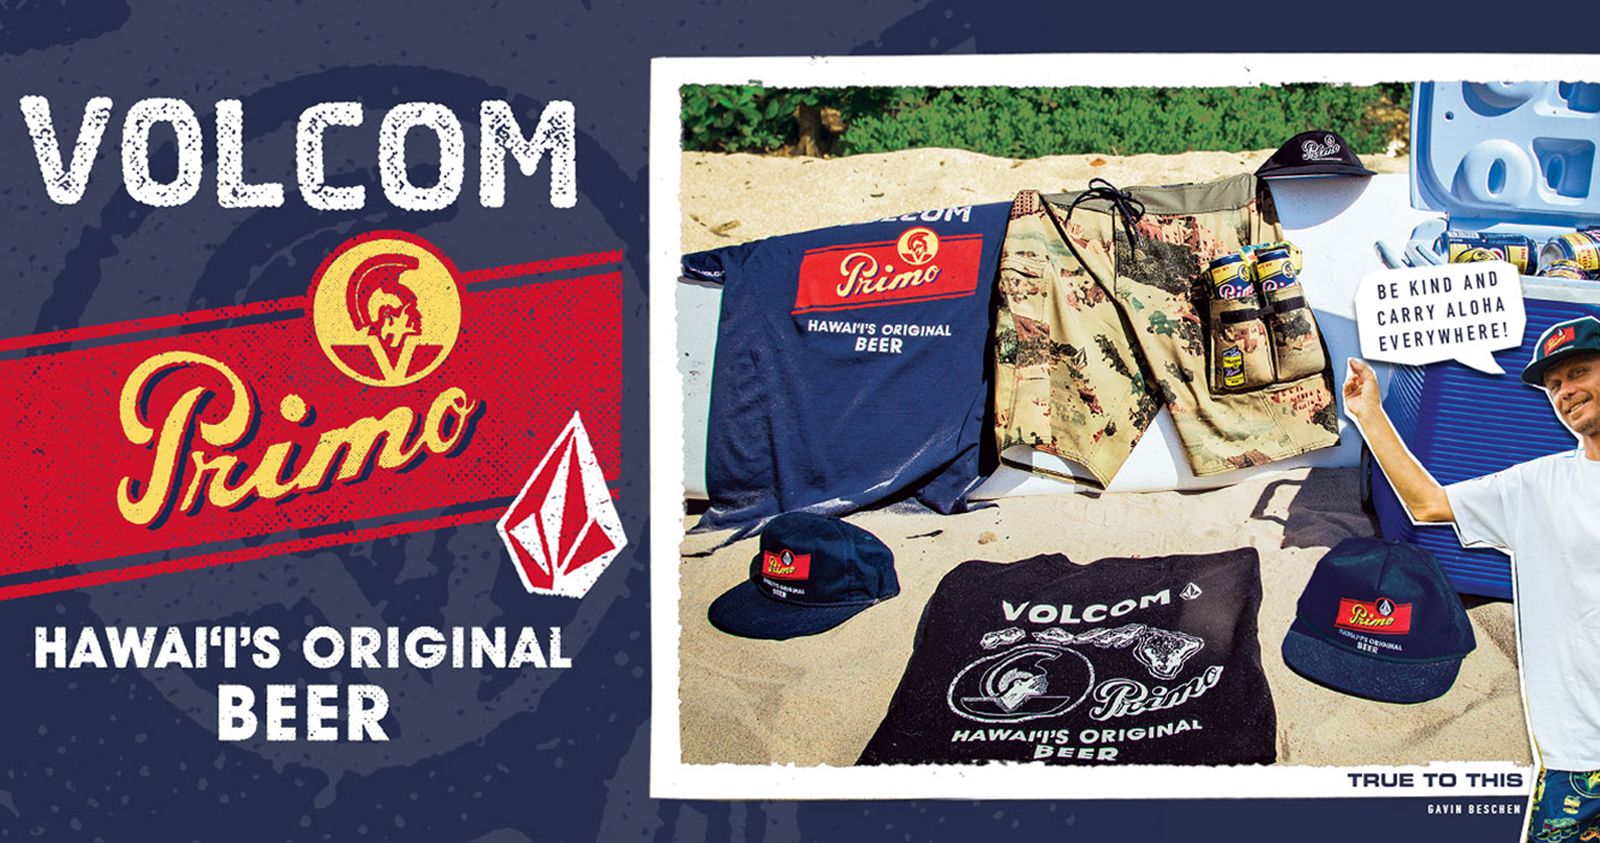 volcom primo beer cllection コラボ ボルコム